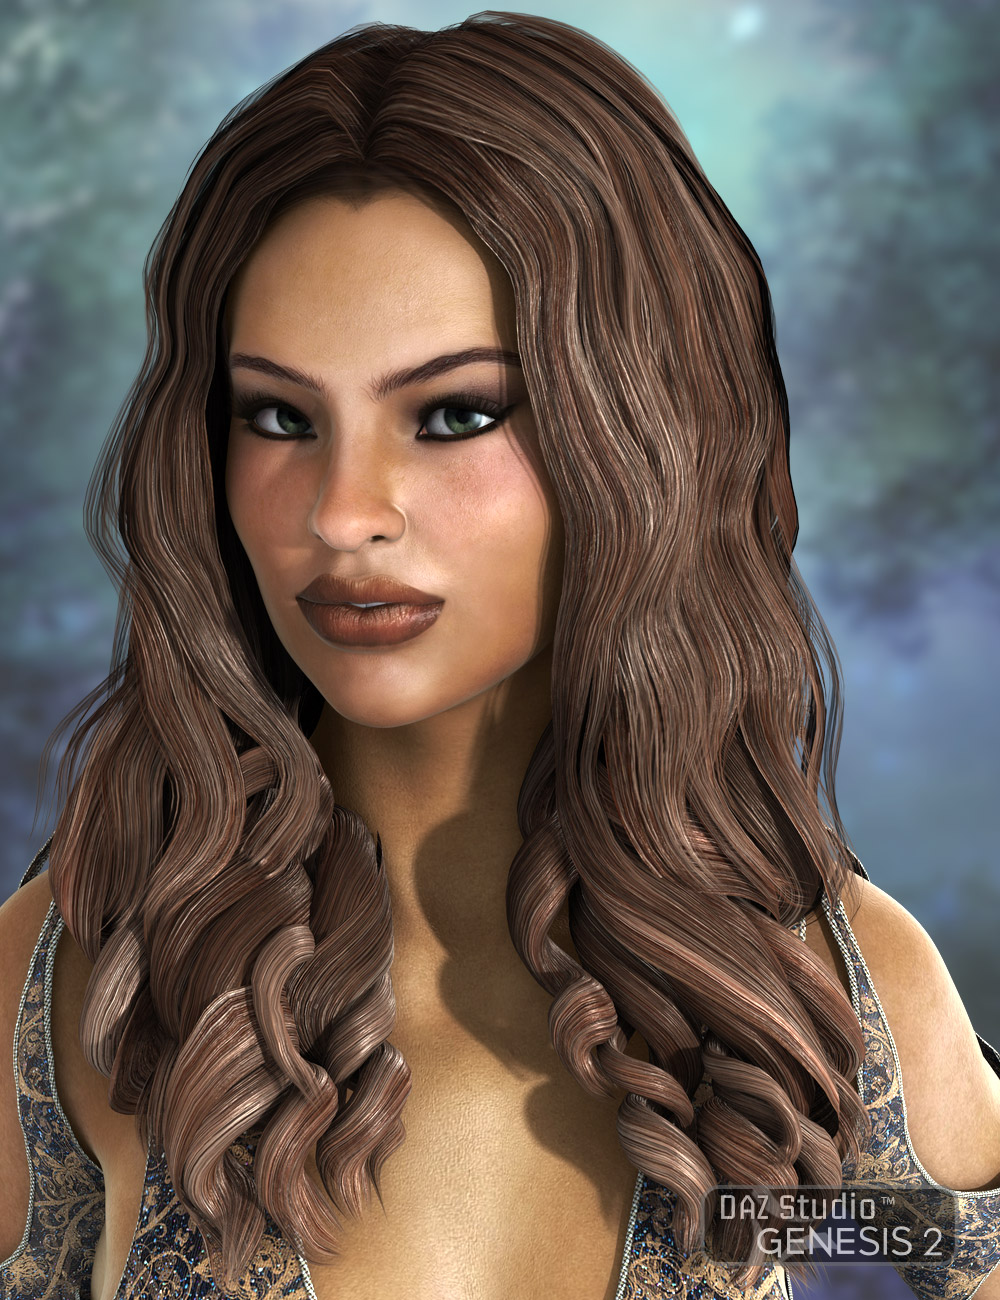 Kalypso Hair by: AprilYSH, 3D Models by Daz 3D